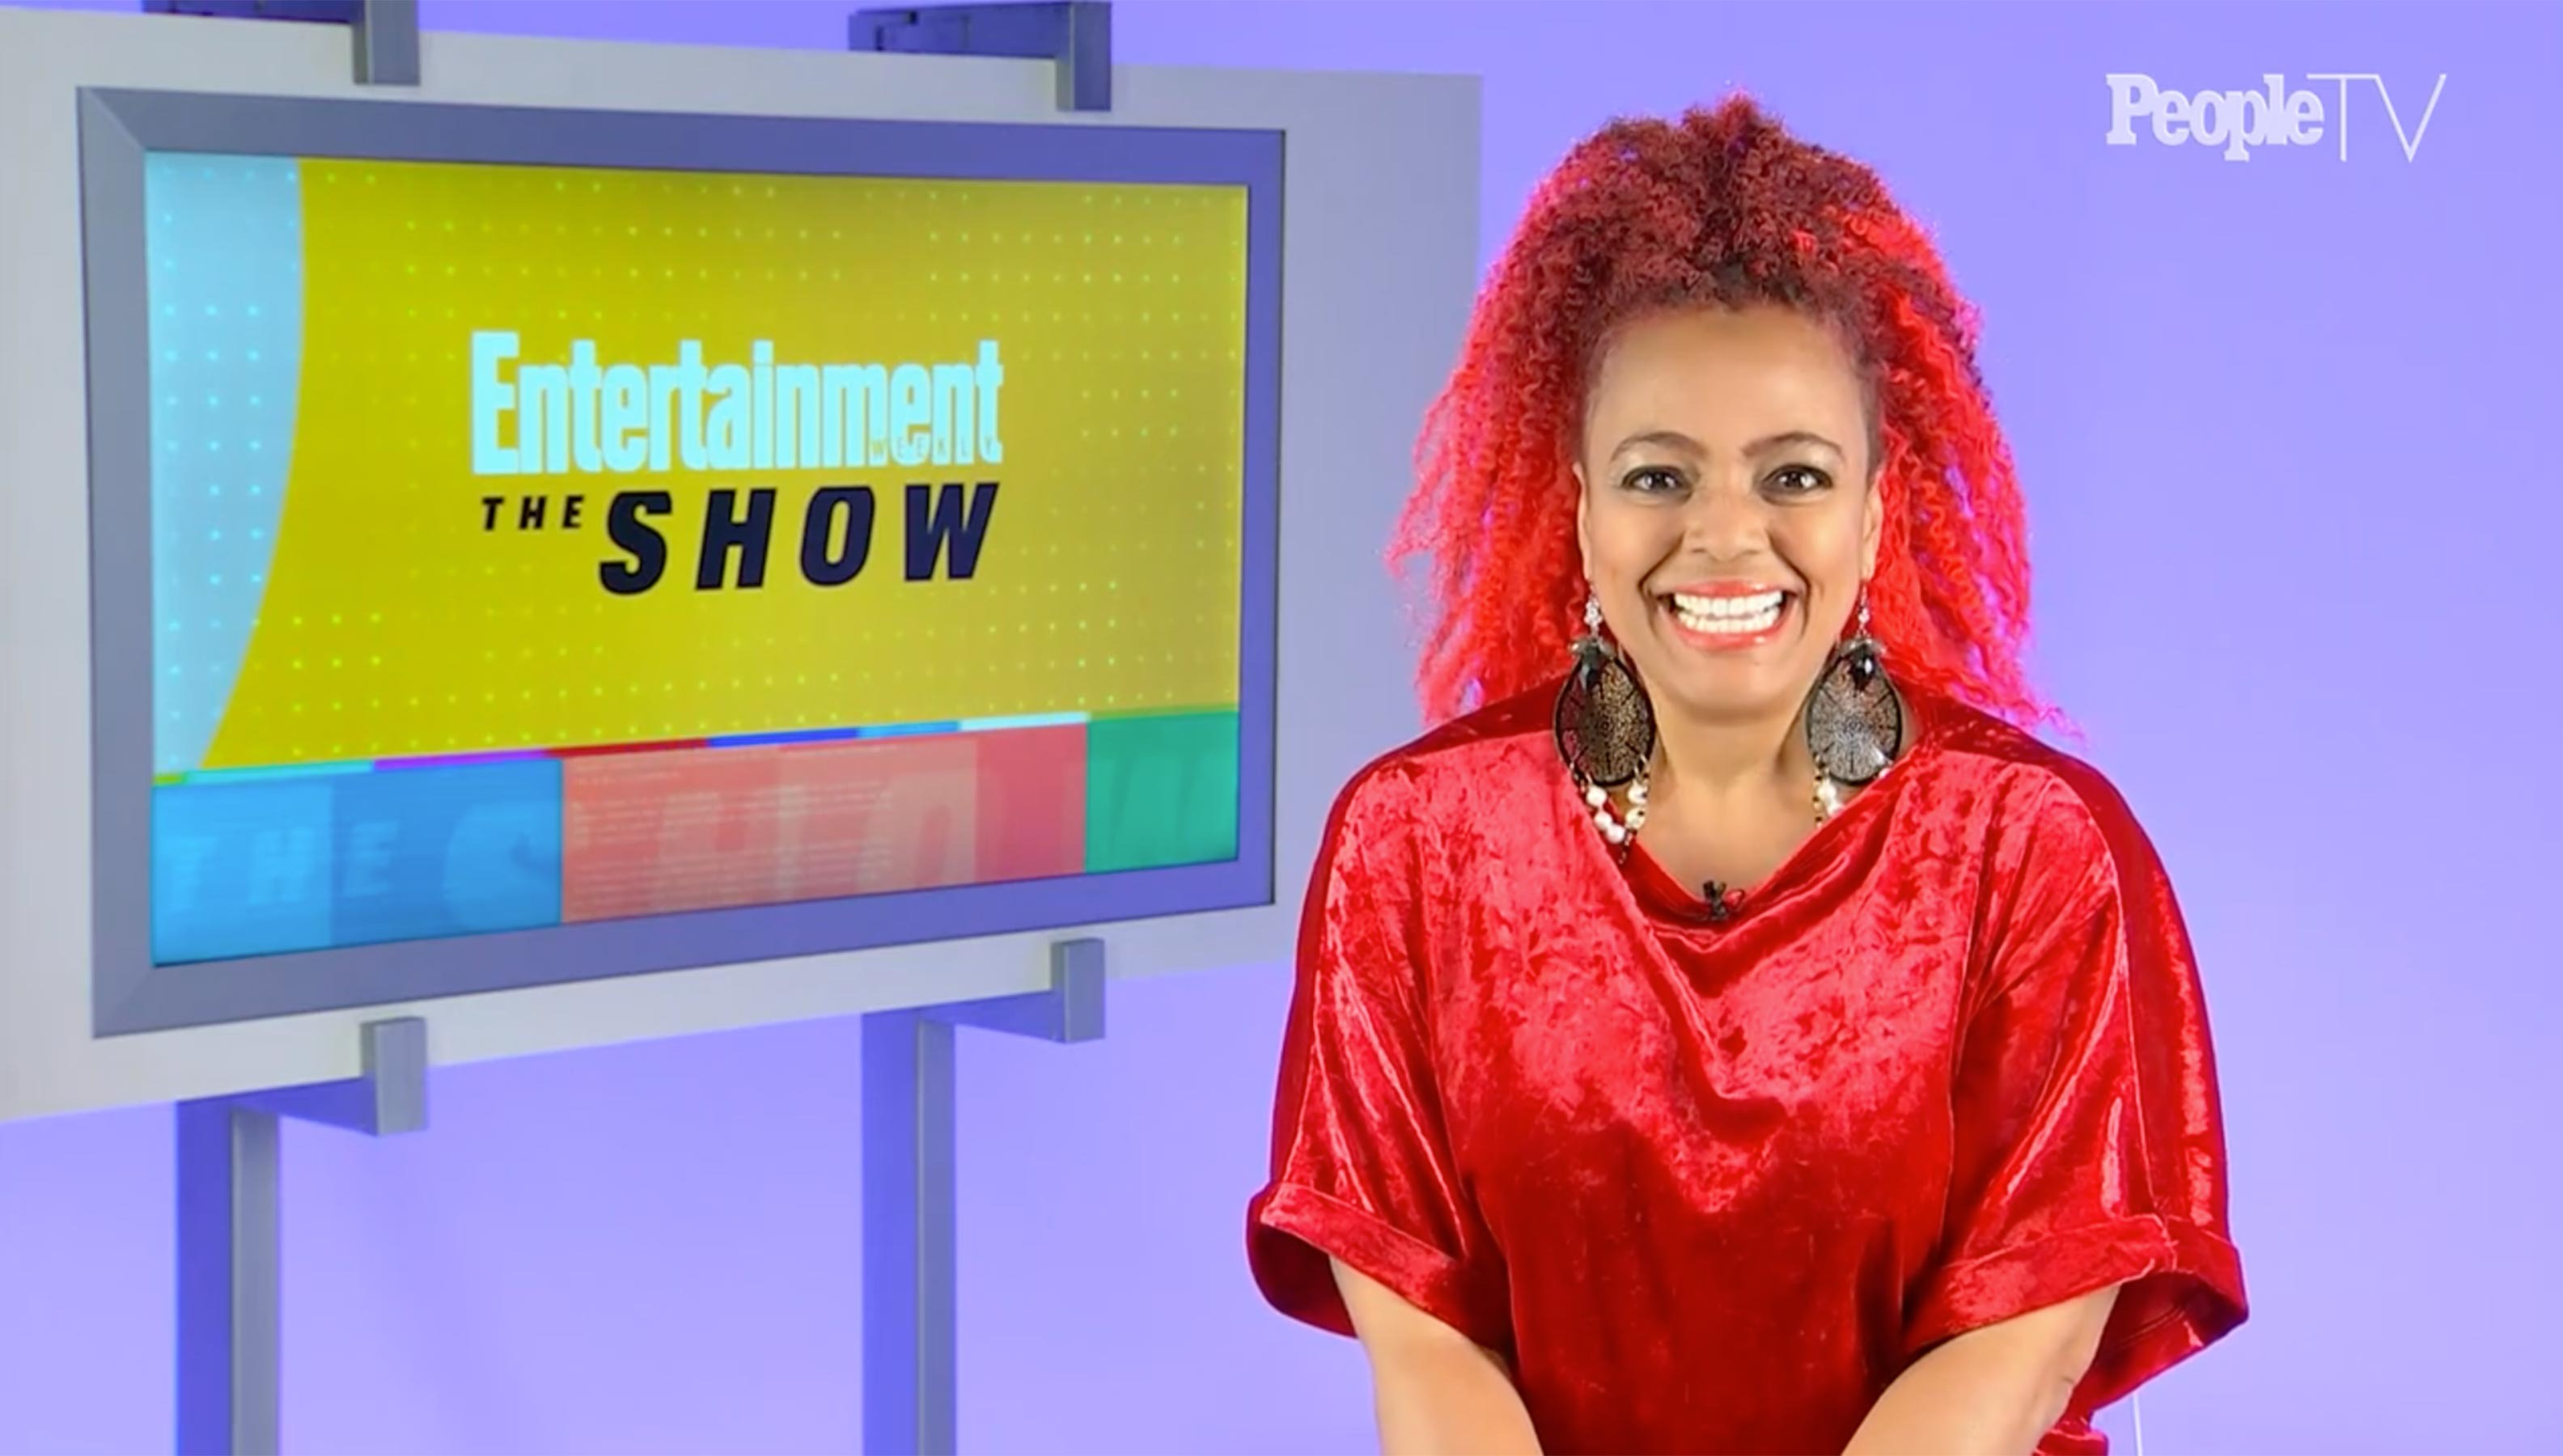 Kim Fields shares memories of The Facts of Life, Good Times